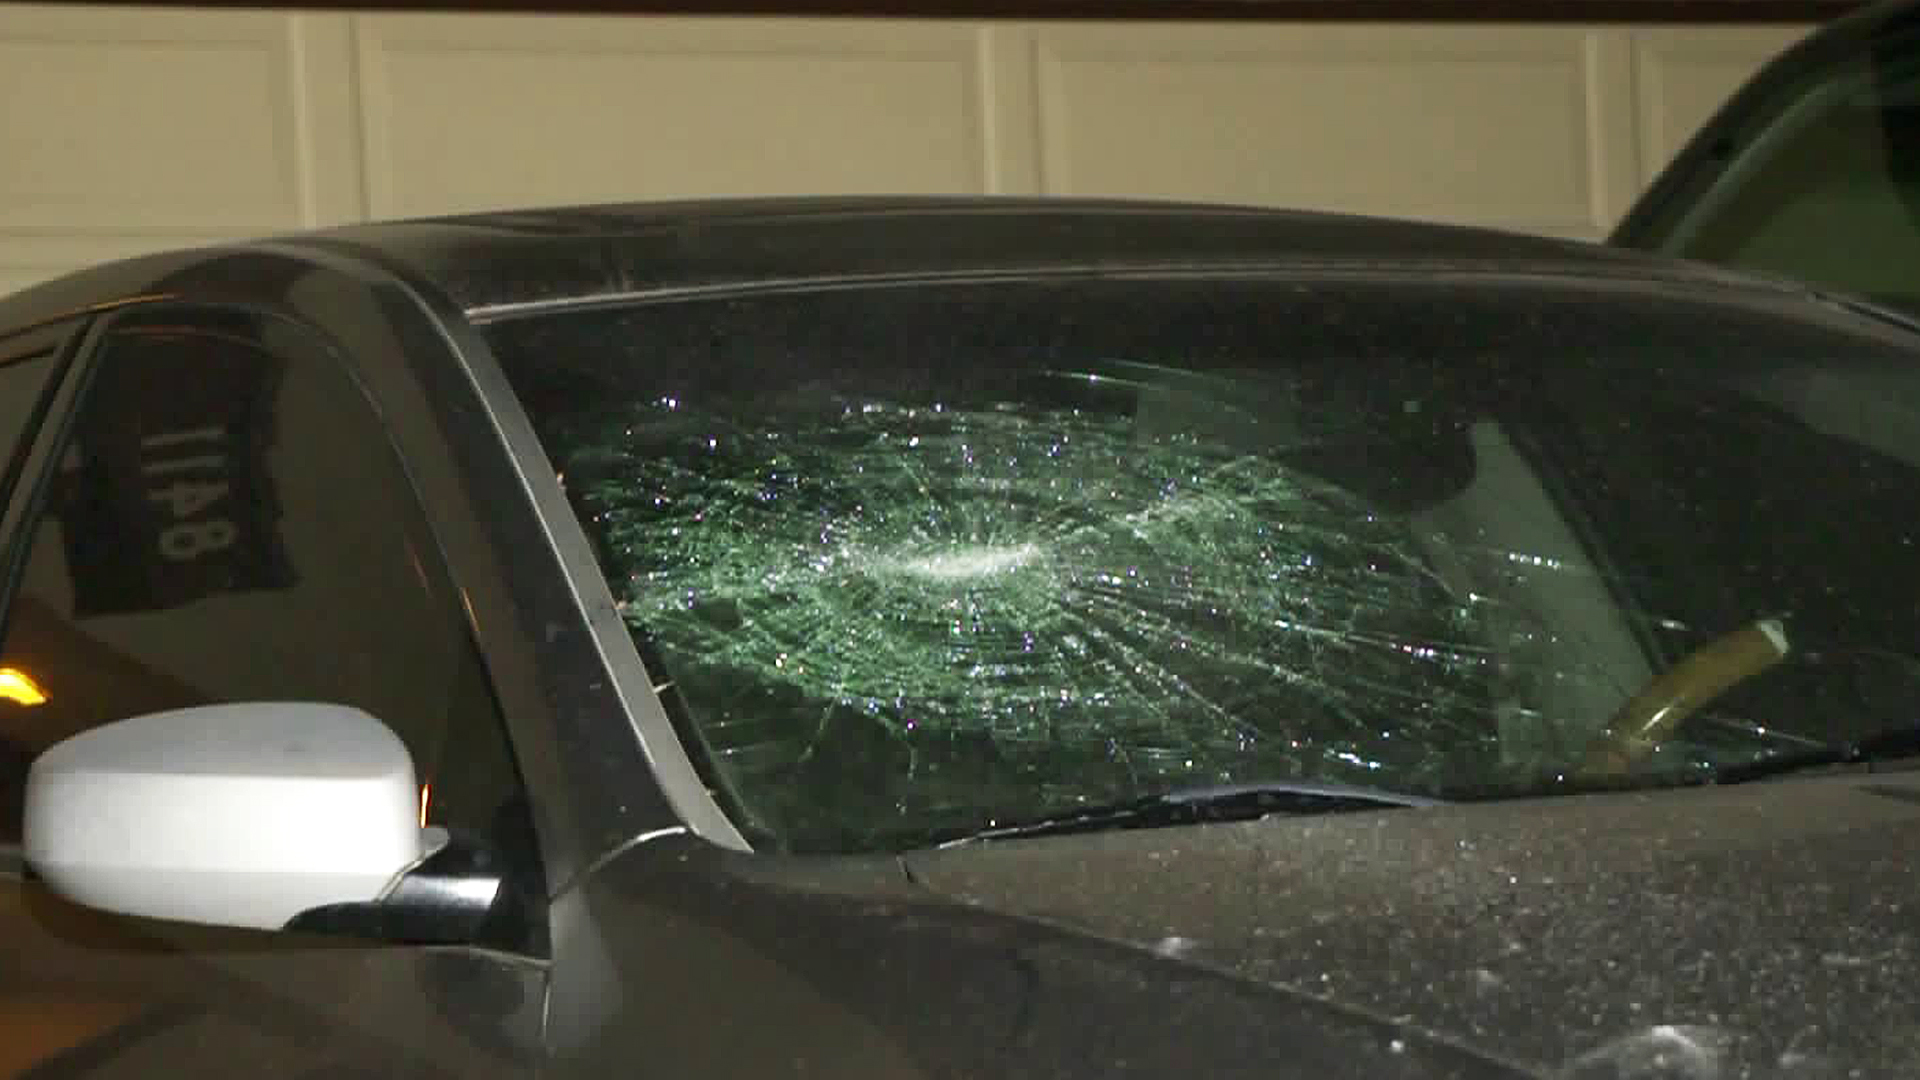 A car is seen with a smashed windshield in Canoga Park on March 6, 2020. (RMG News)